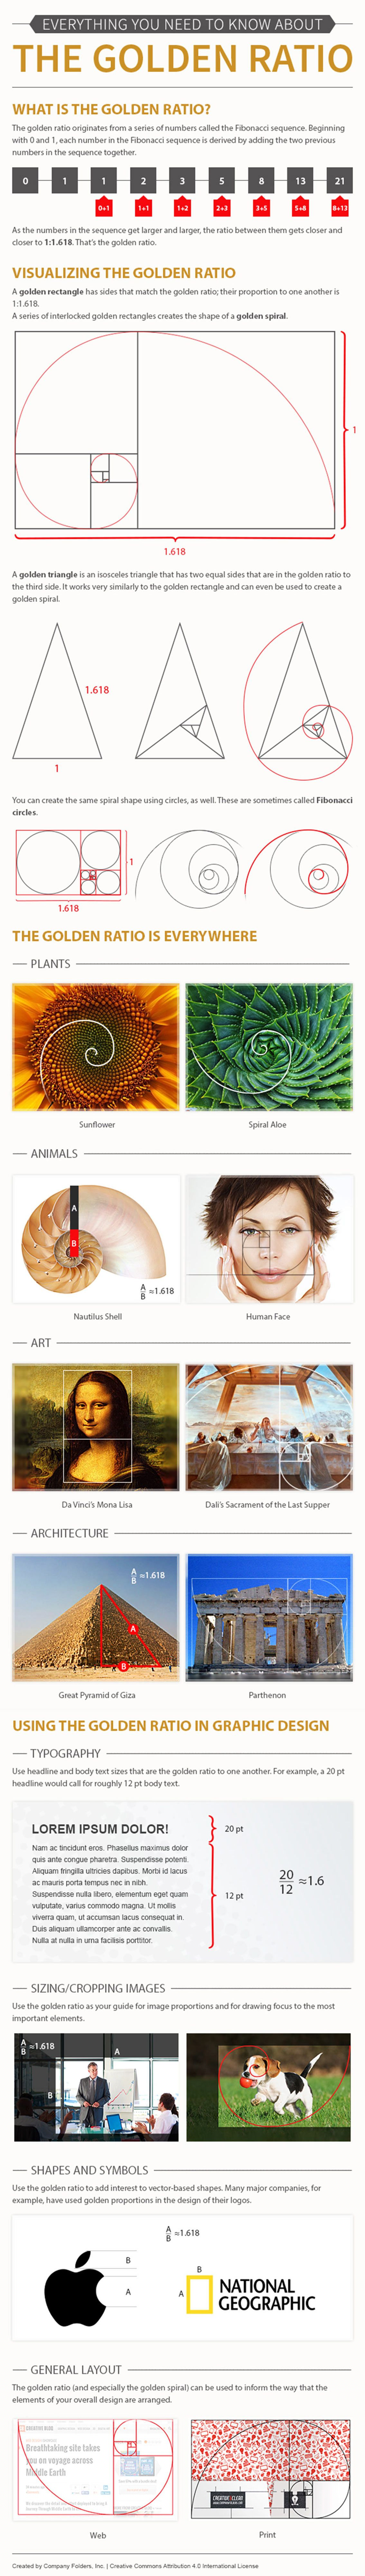 How to Apply the Golden Ratio in Graphic Design. Topic: Web designer, photography, architecture, illustration, poster.